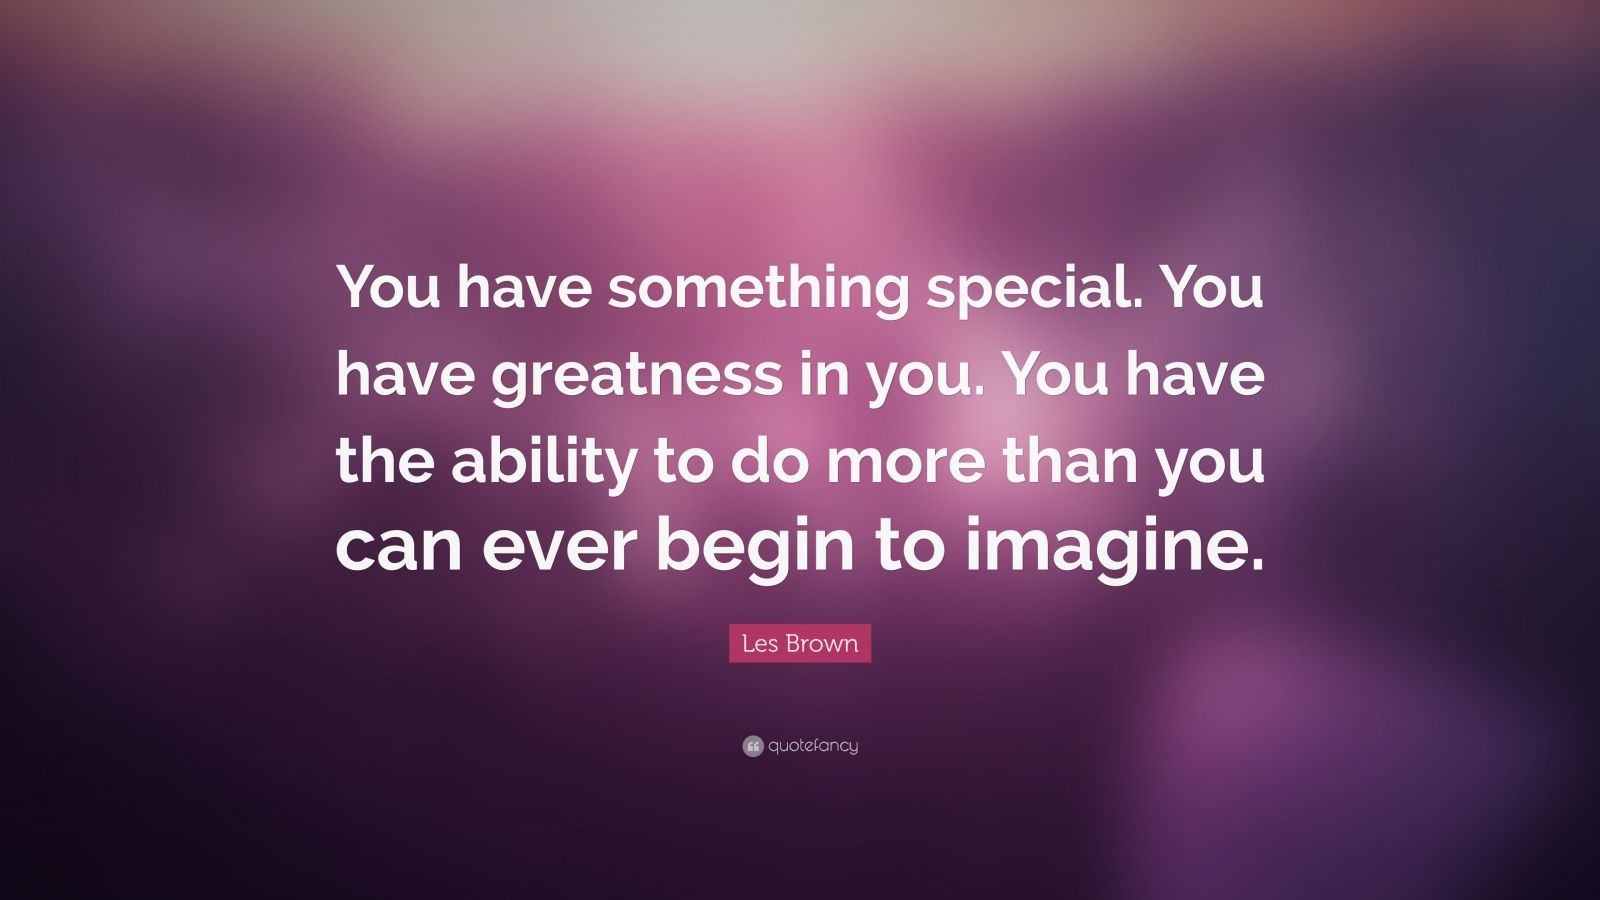 "Les Brown Quote: ""You have something special. You have greatness in you. You have the ability to do more than you can ever begin to imagine."""